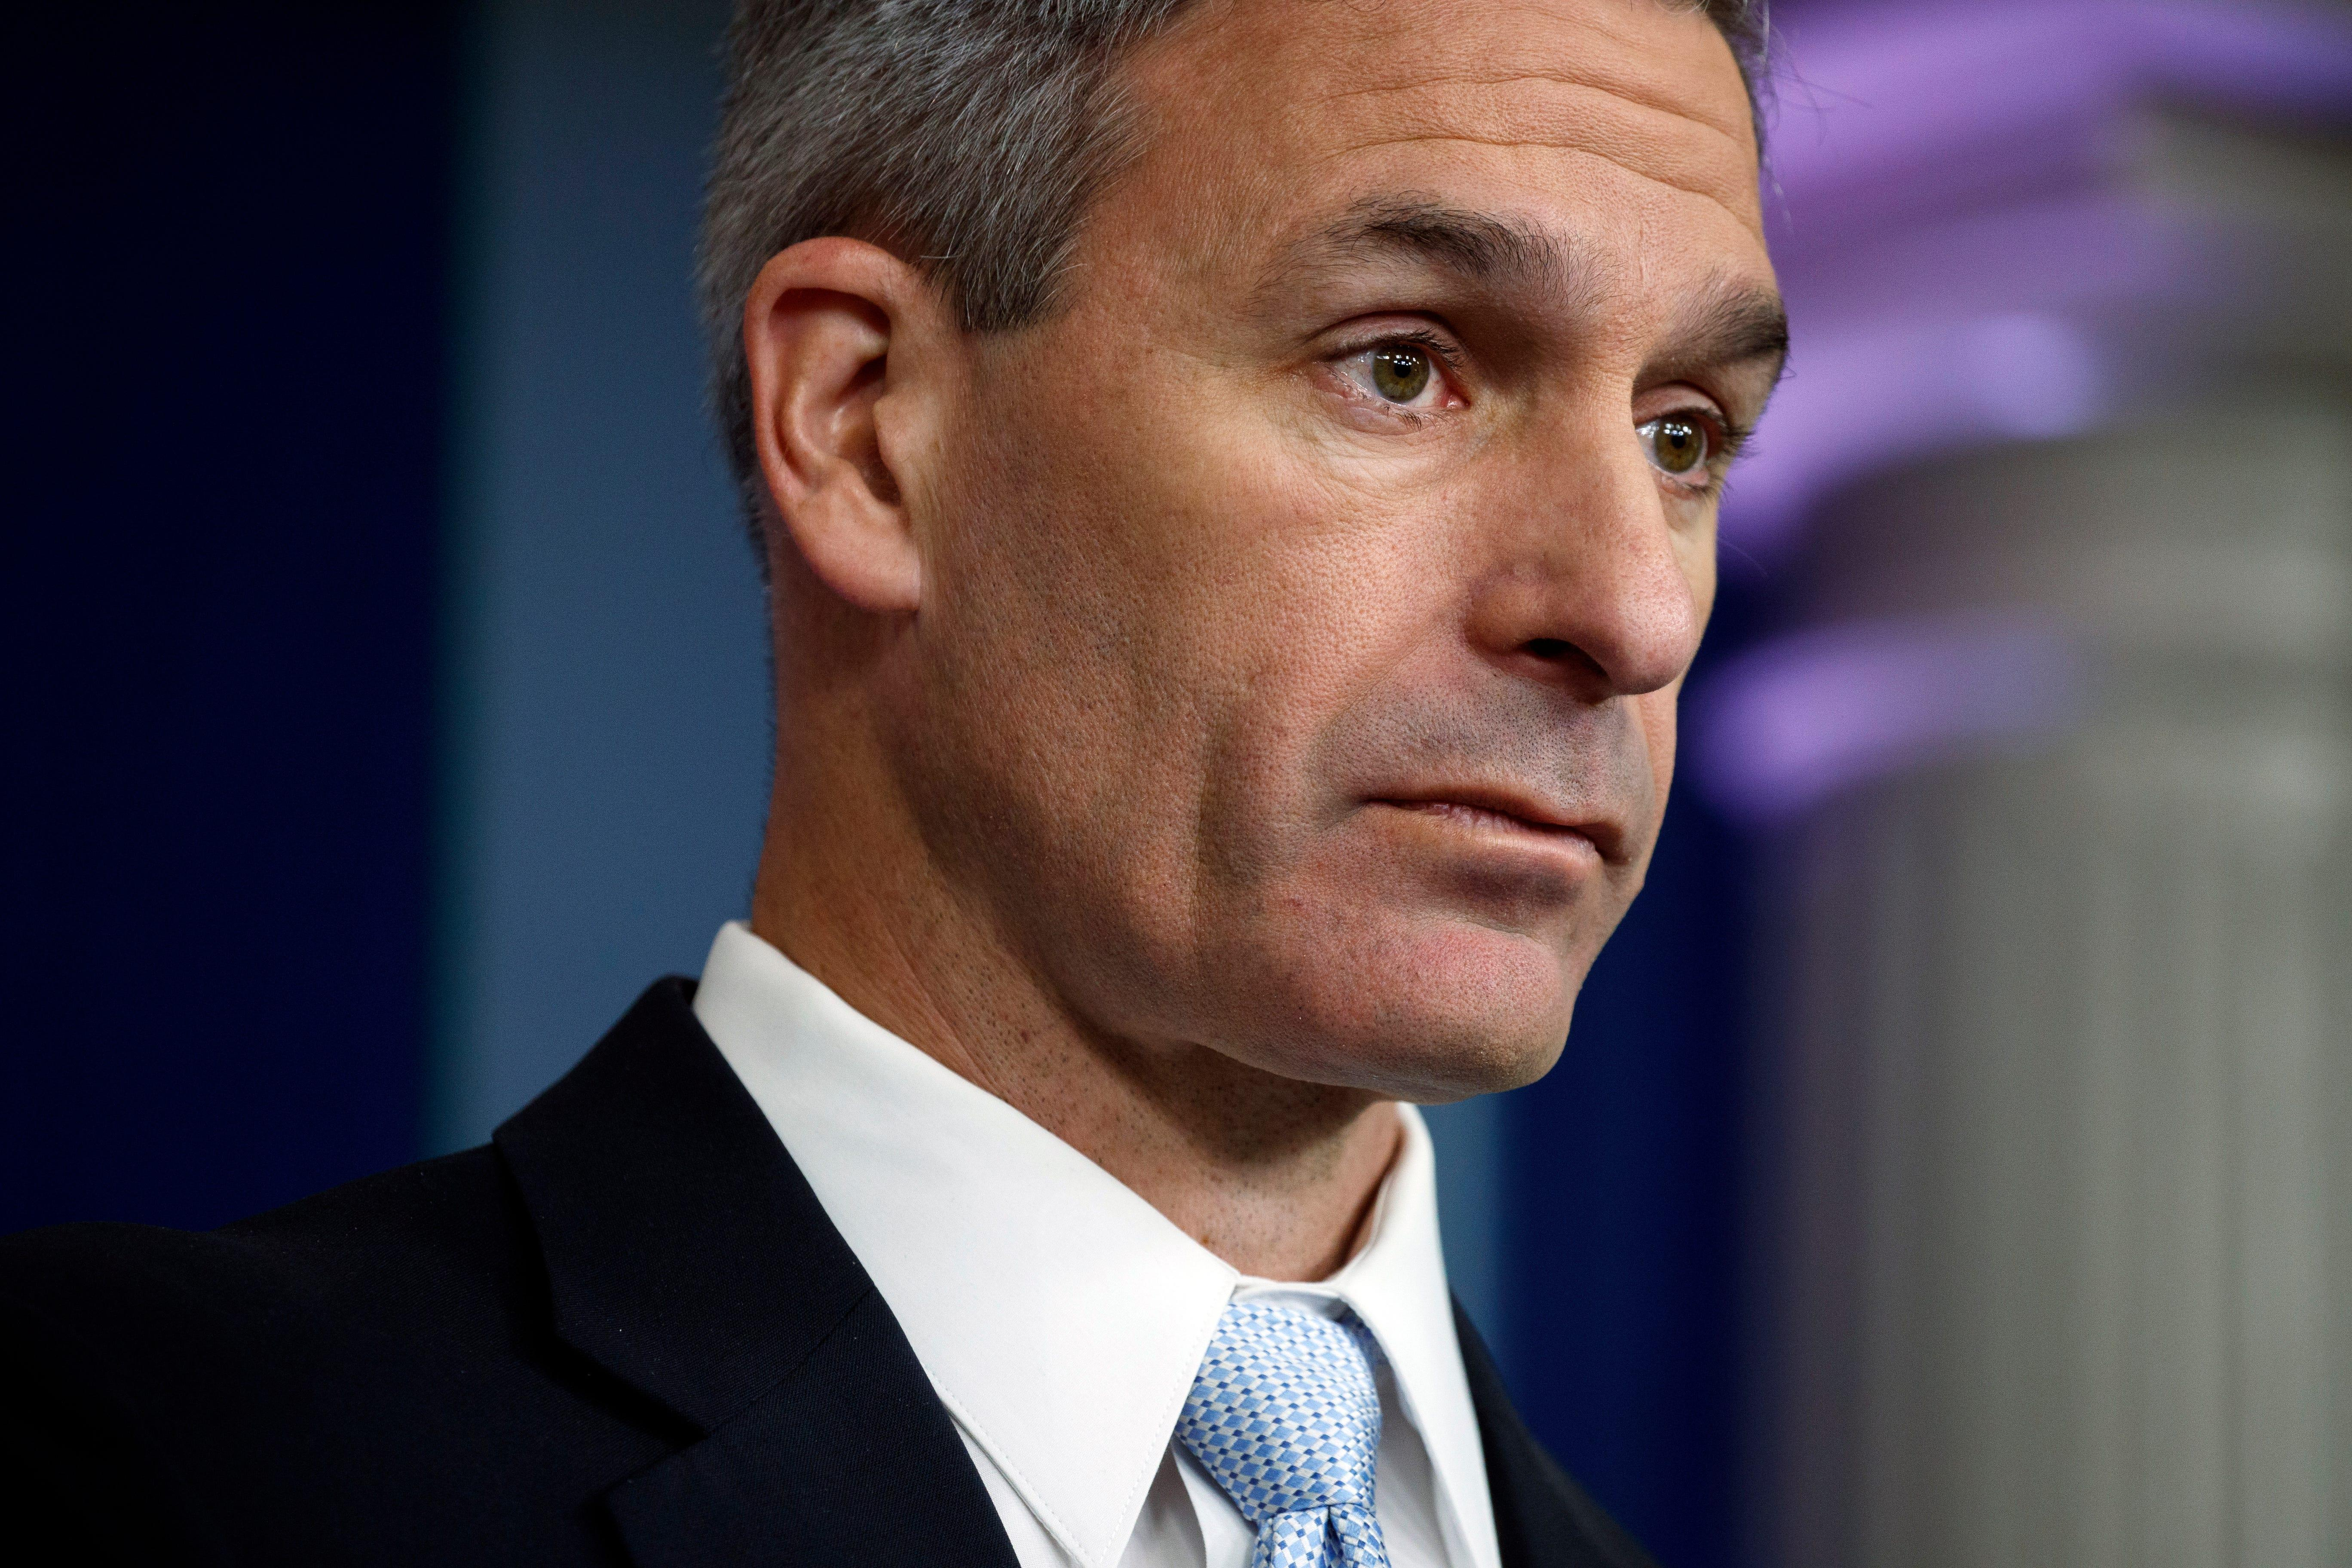 Immigration official Ken Cuccinelli: Statue of Liberty poem refers to immigrants from Europe